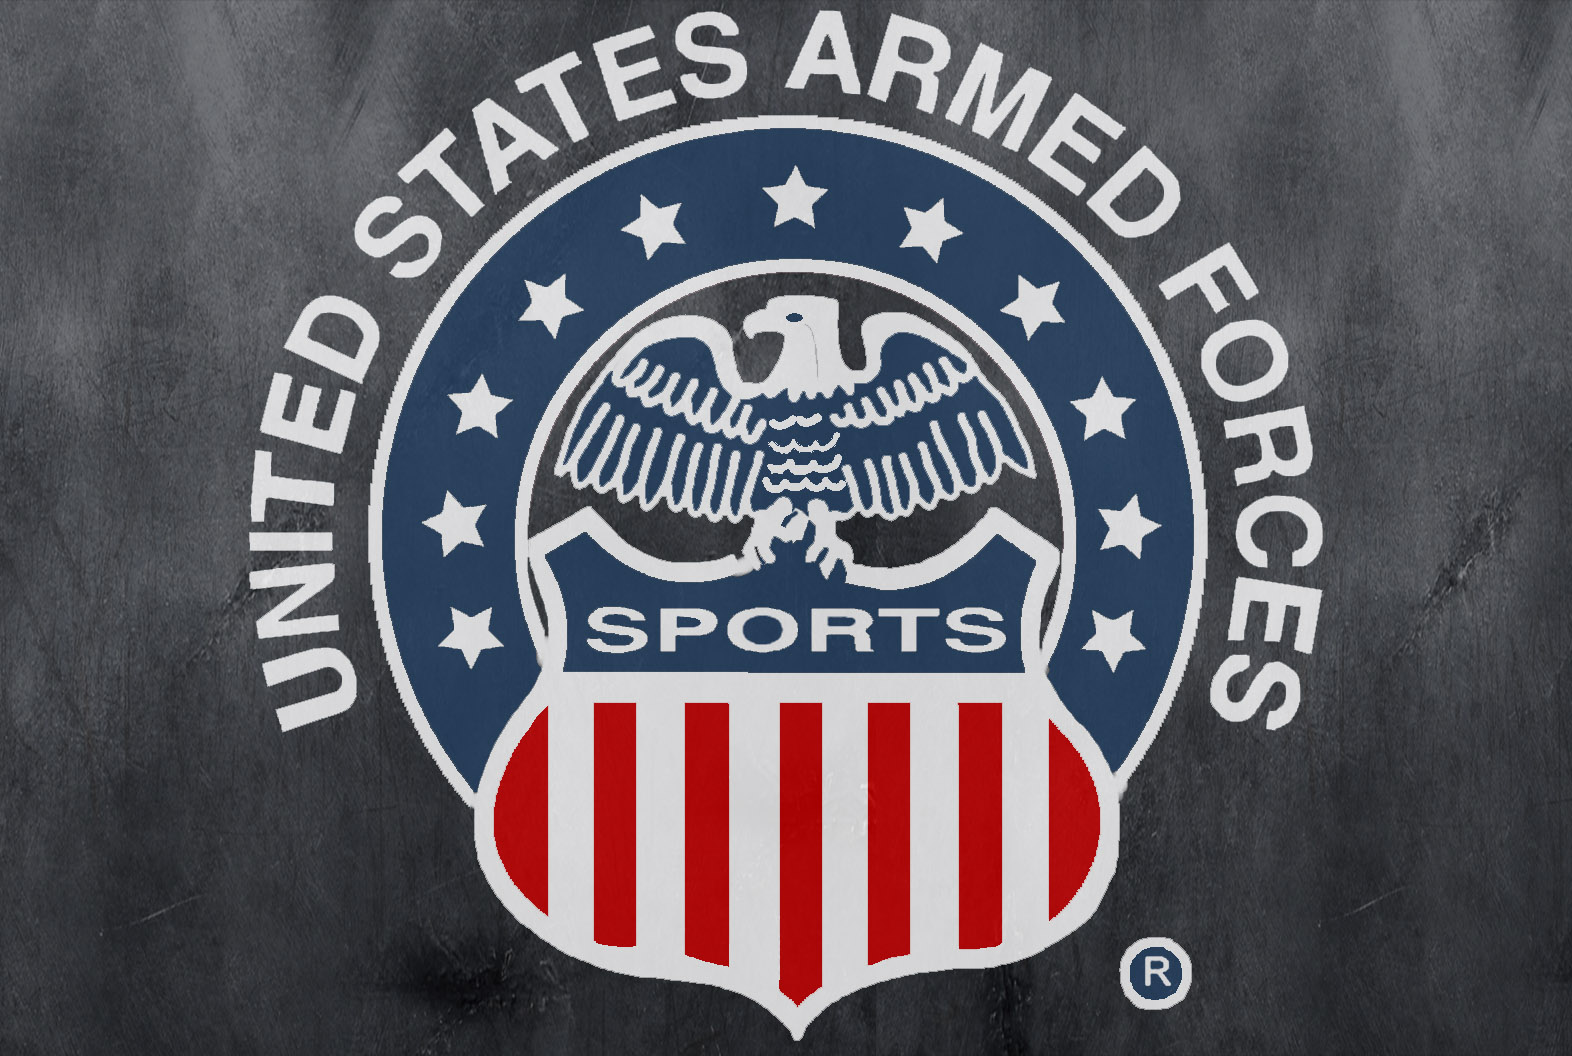 As leadership continues to monitor the current COVID-19 guidance from the Department of Defense and the Center for Disease Control and Prevention, the Armed Forces Sports Council has made the decision to cancel all Armed Forces Sports Championships and events through September 30, 2020.